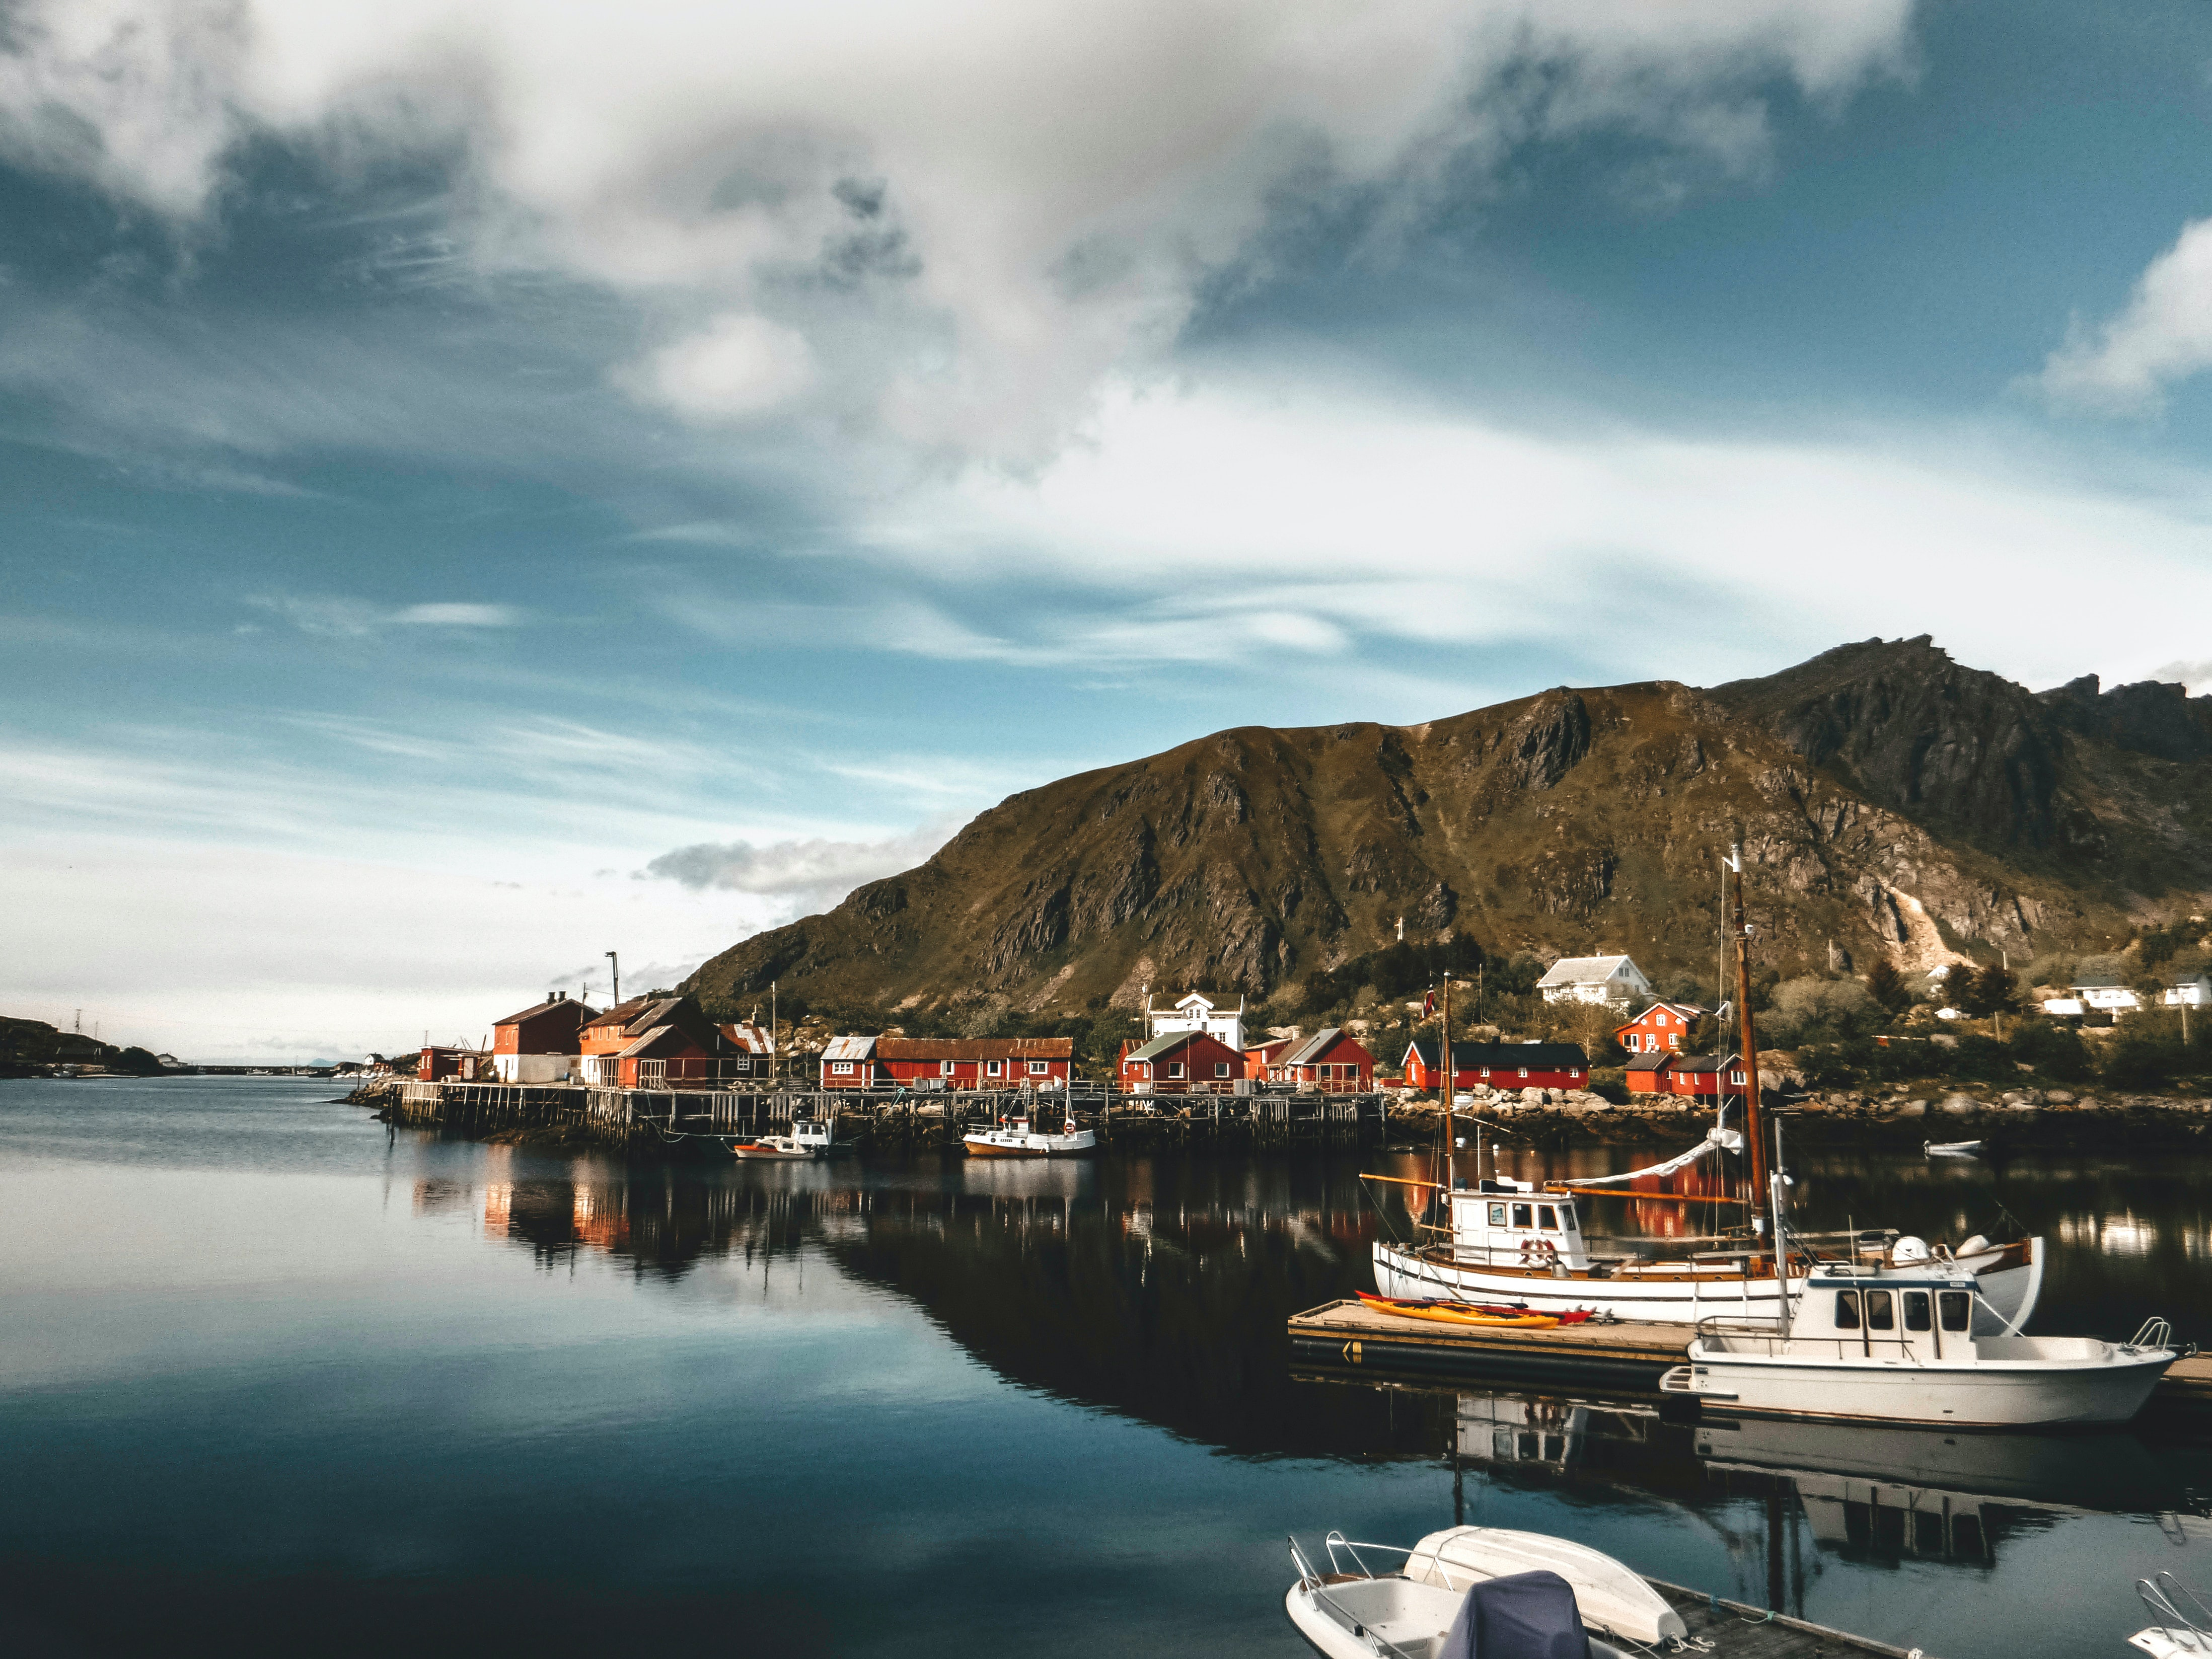 Norway is a covid alternative travel destination with fishing boats in the sea and wooden red houses.